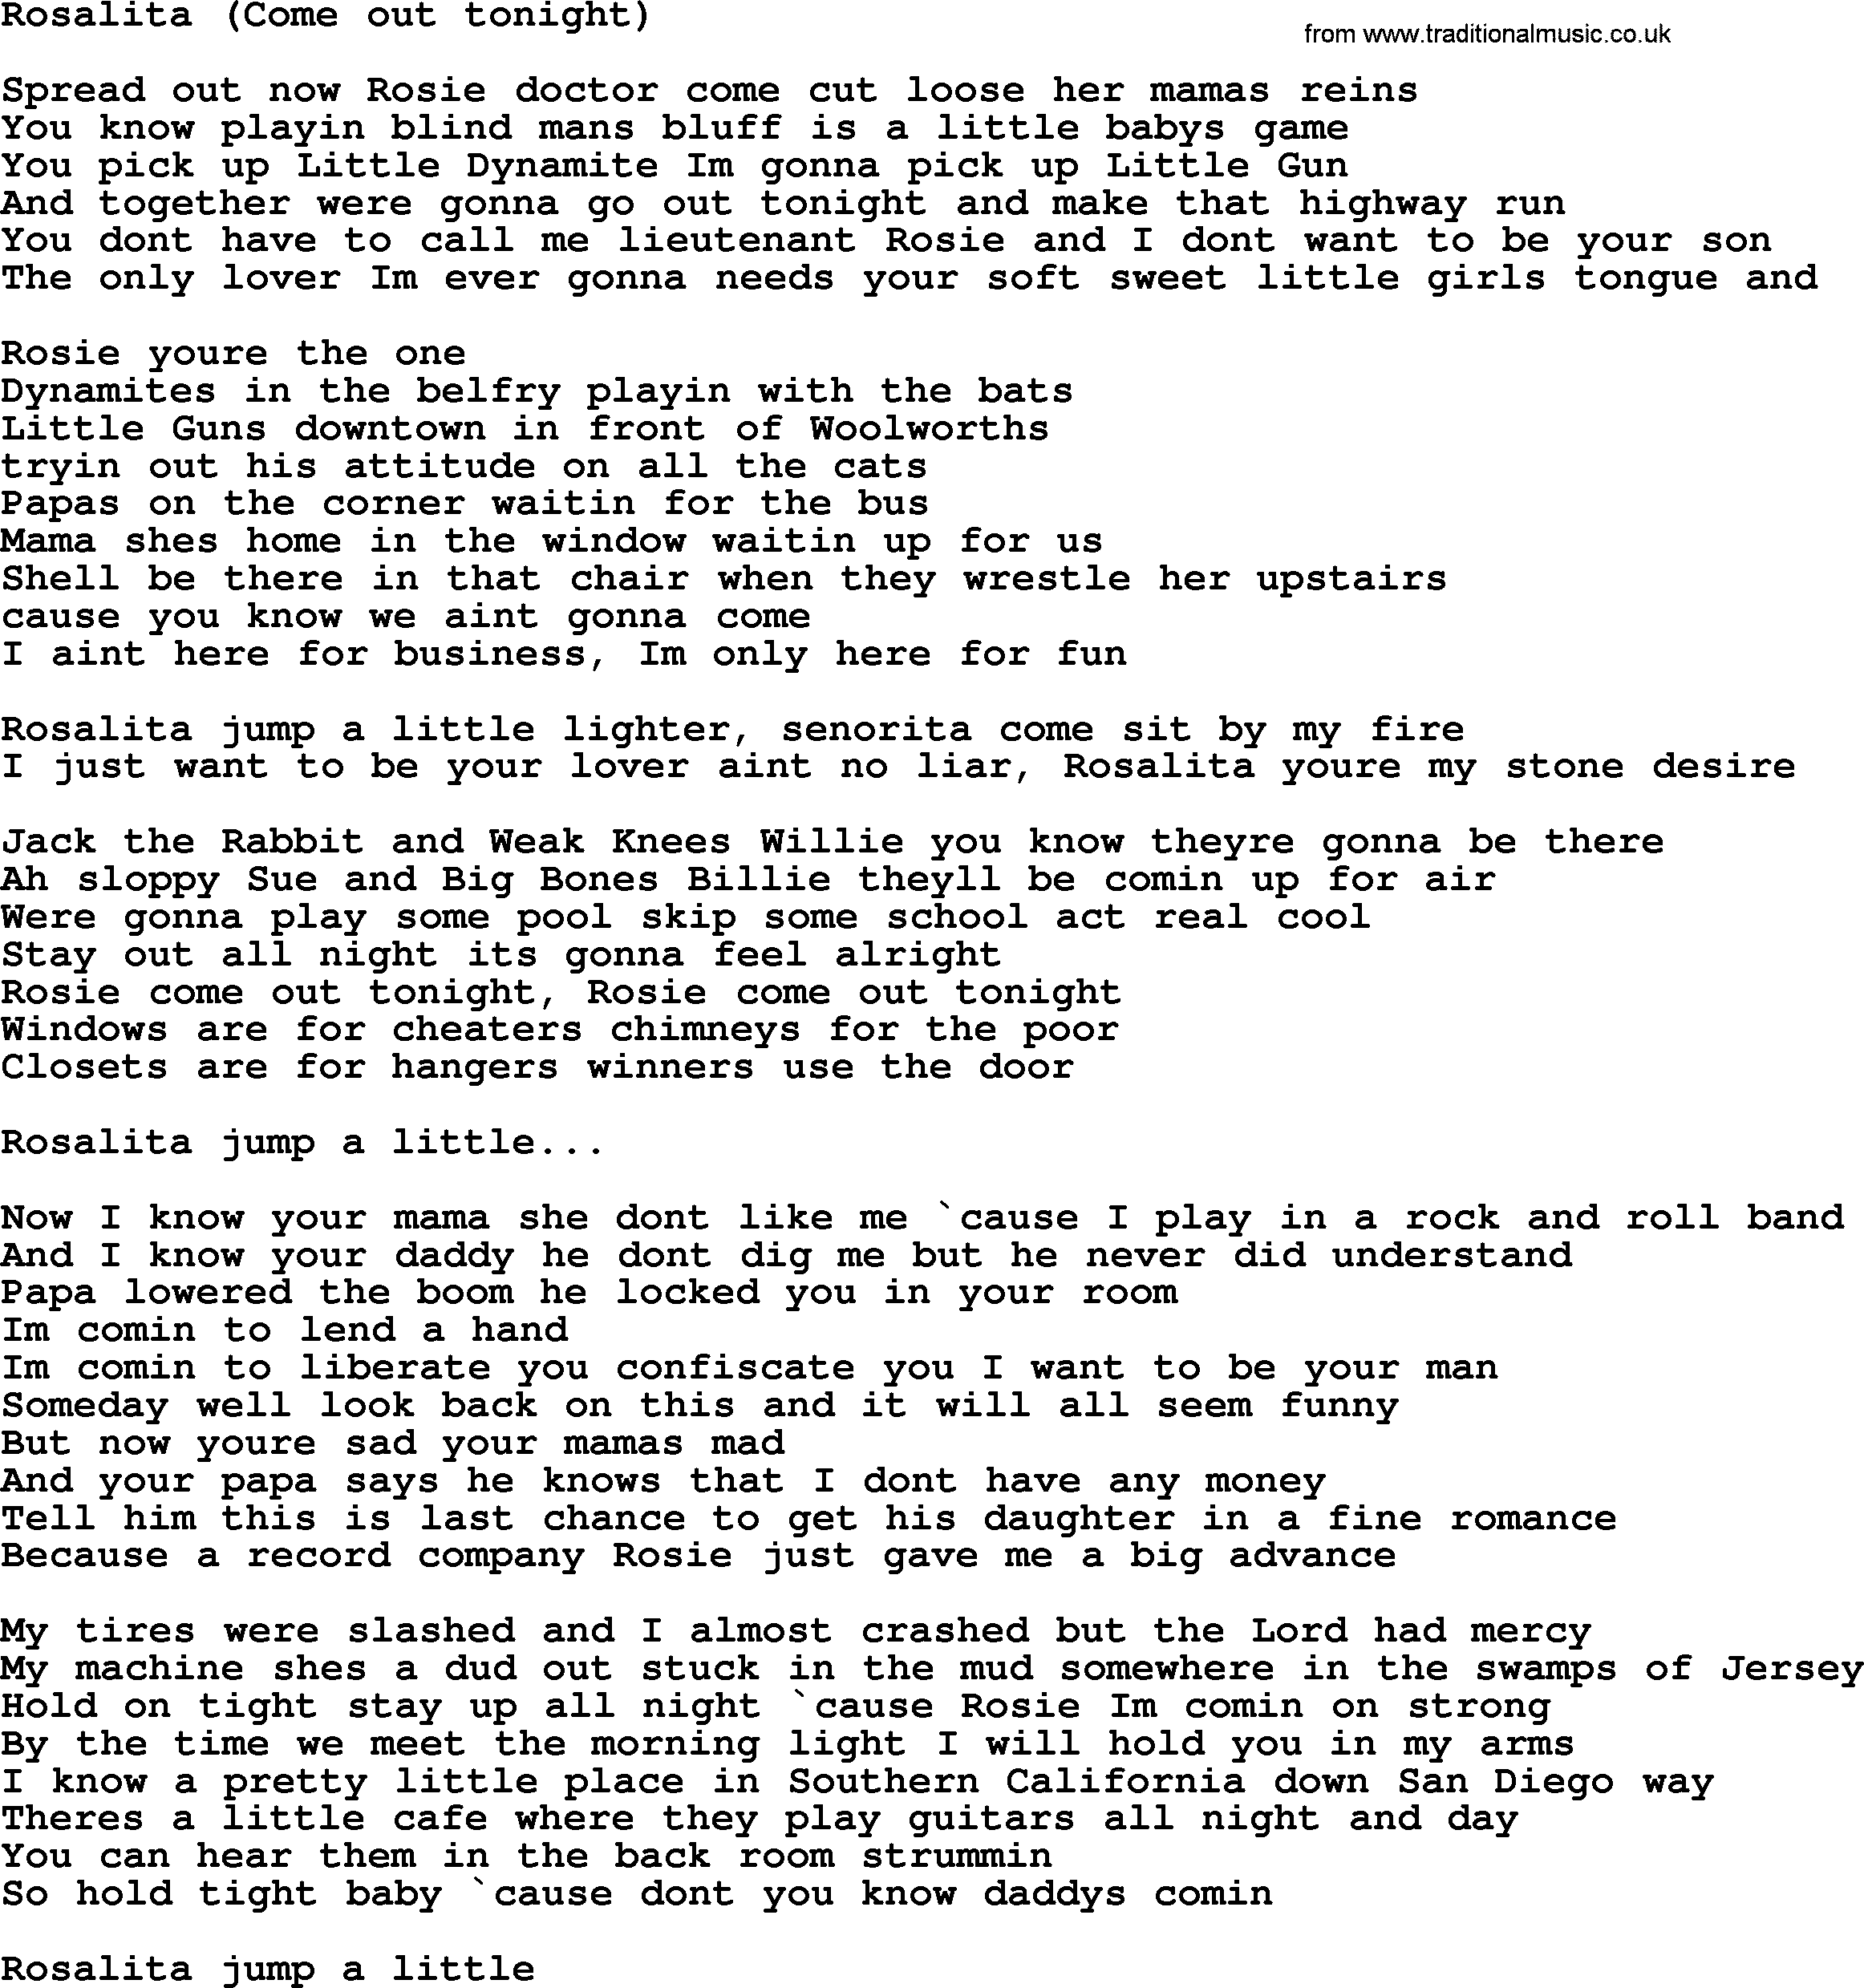 Bruce Springsteen song: Rosalita(Come Out Tonight), lyrics